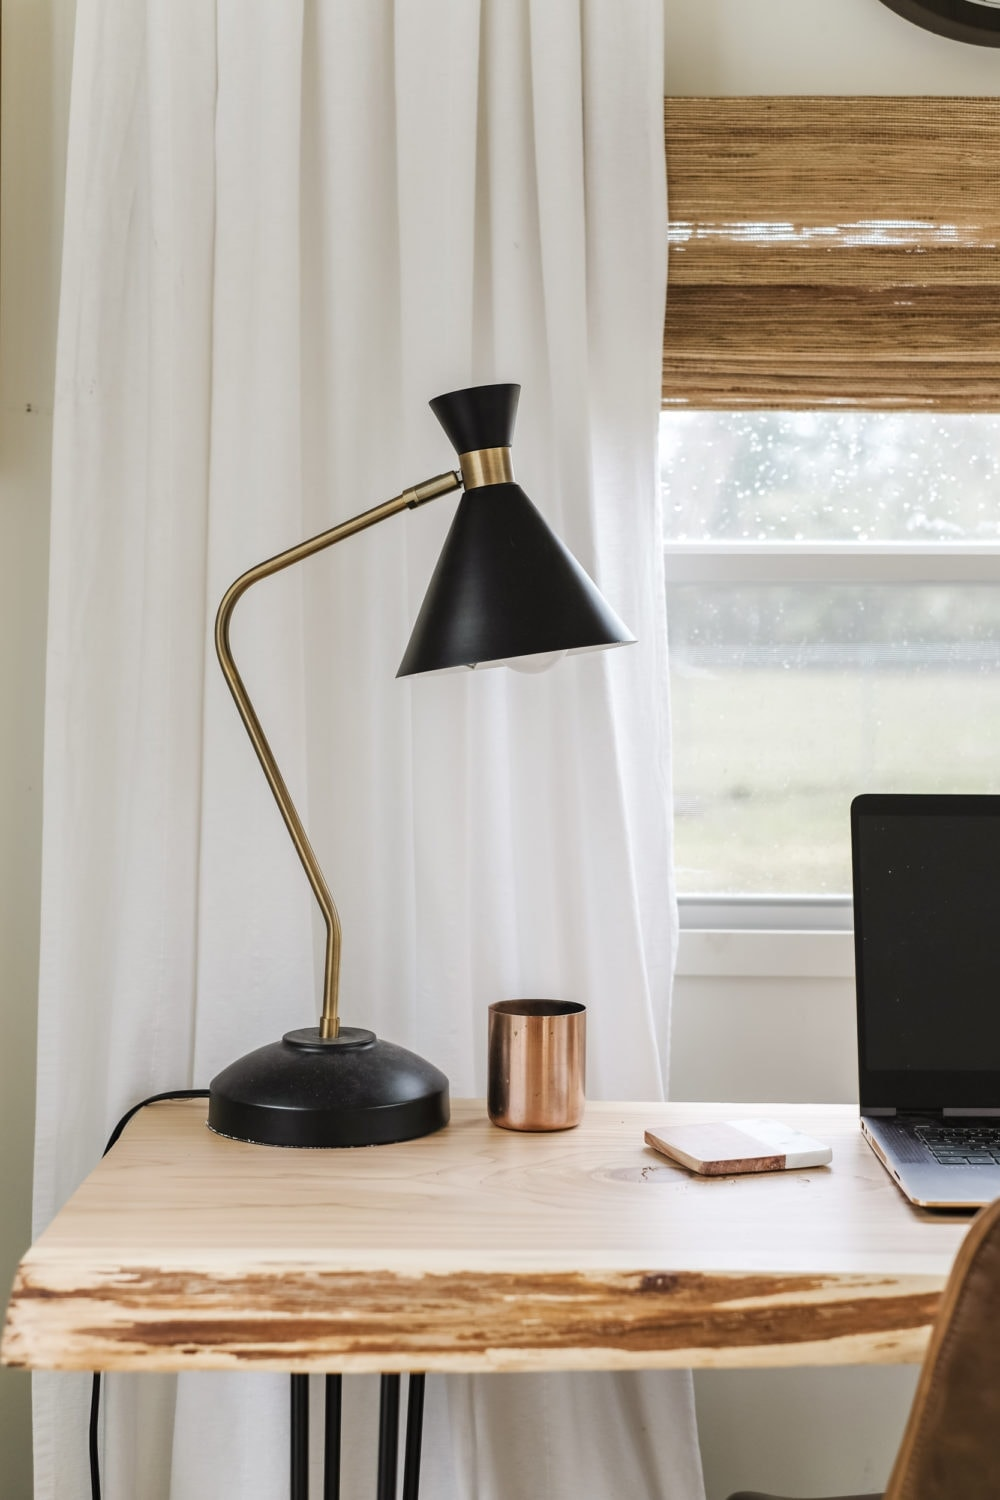 Black modern desk lamp and copper candle on top of wood desk